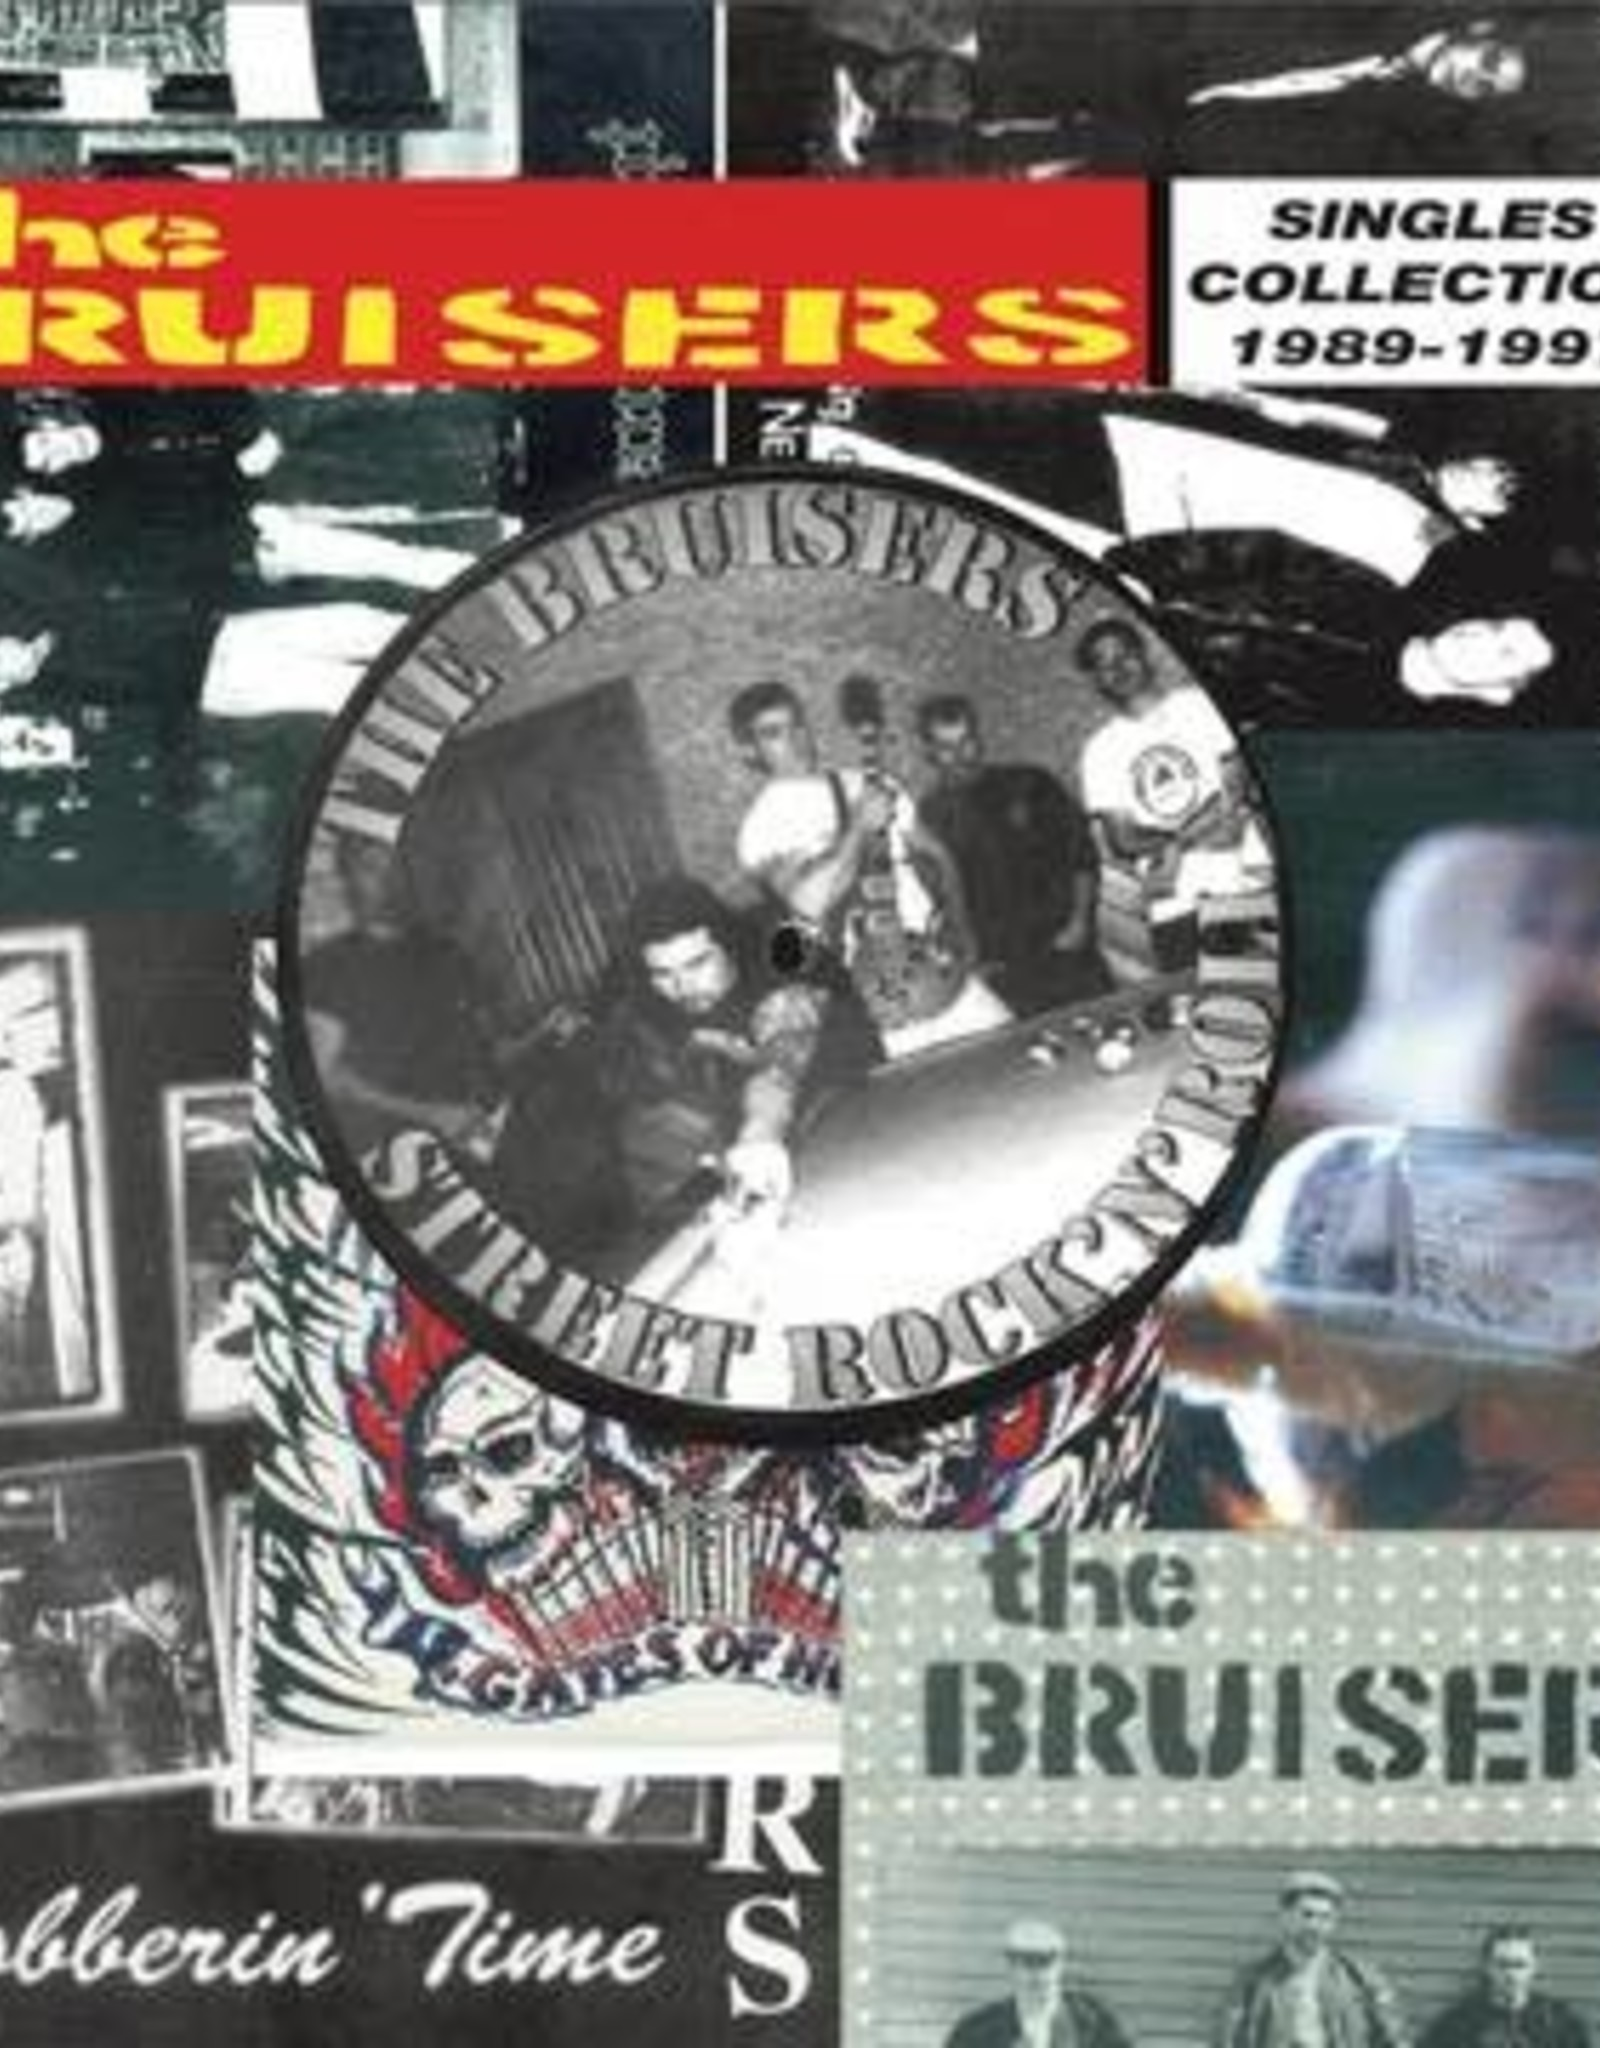 The Bruisers - Bruisers Singles Collection 1989-1997 (2Lp) (RSD 6/21)